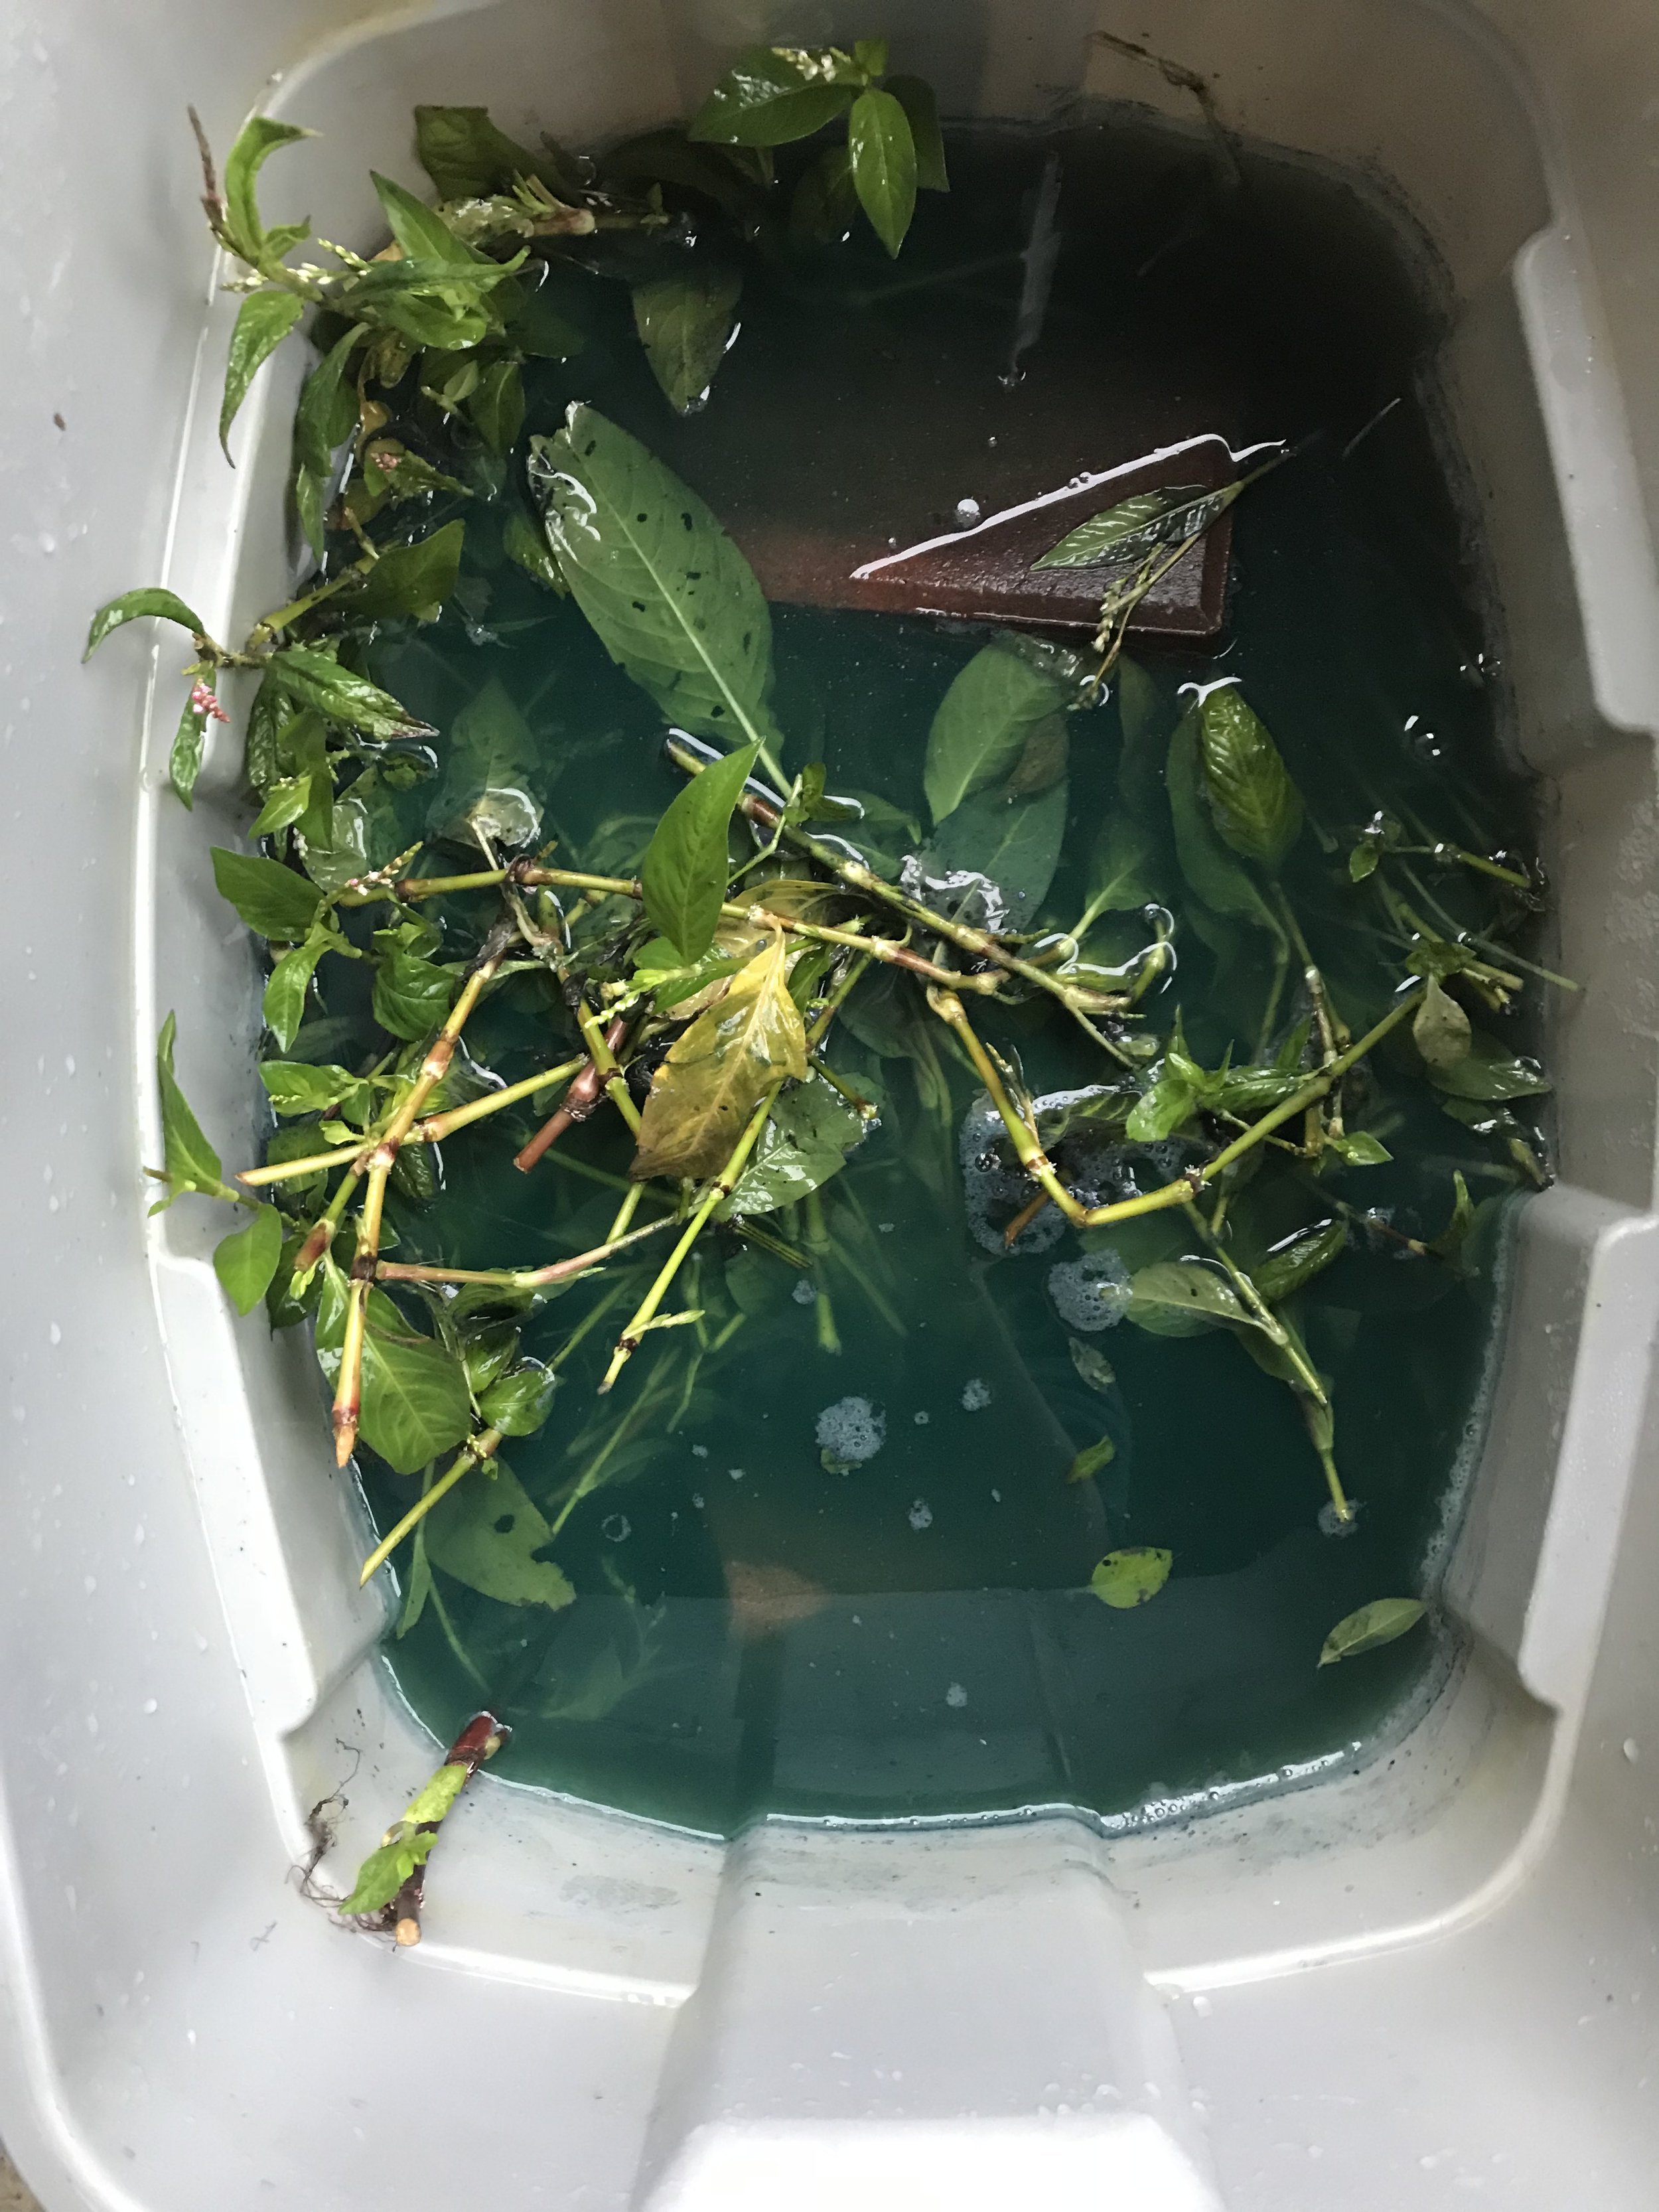 Then take a large bucket or tub, and place all leaves (remove all flowers and seeds) inside and add water to a few inches above the leaves.